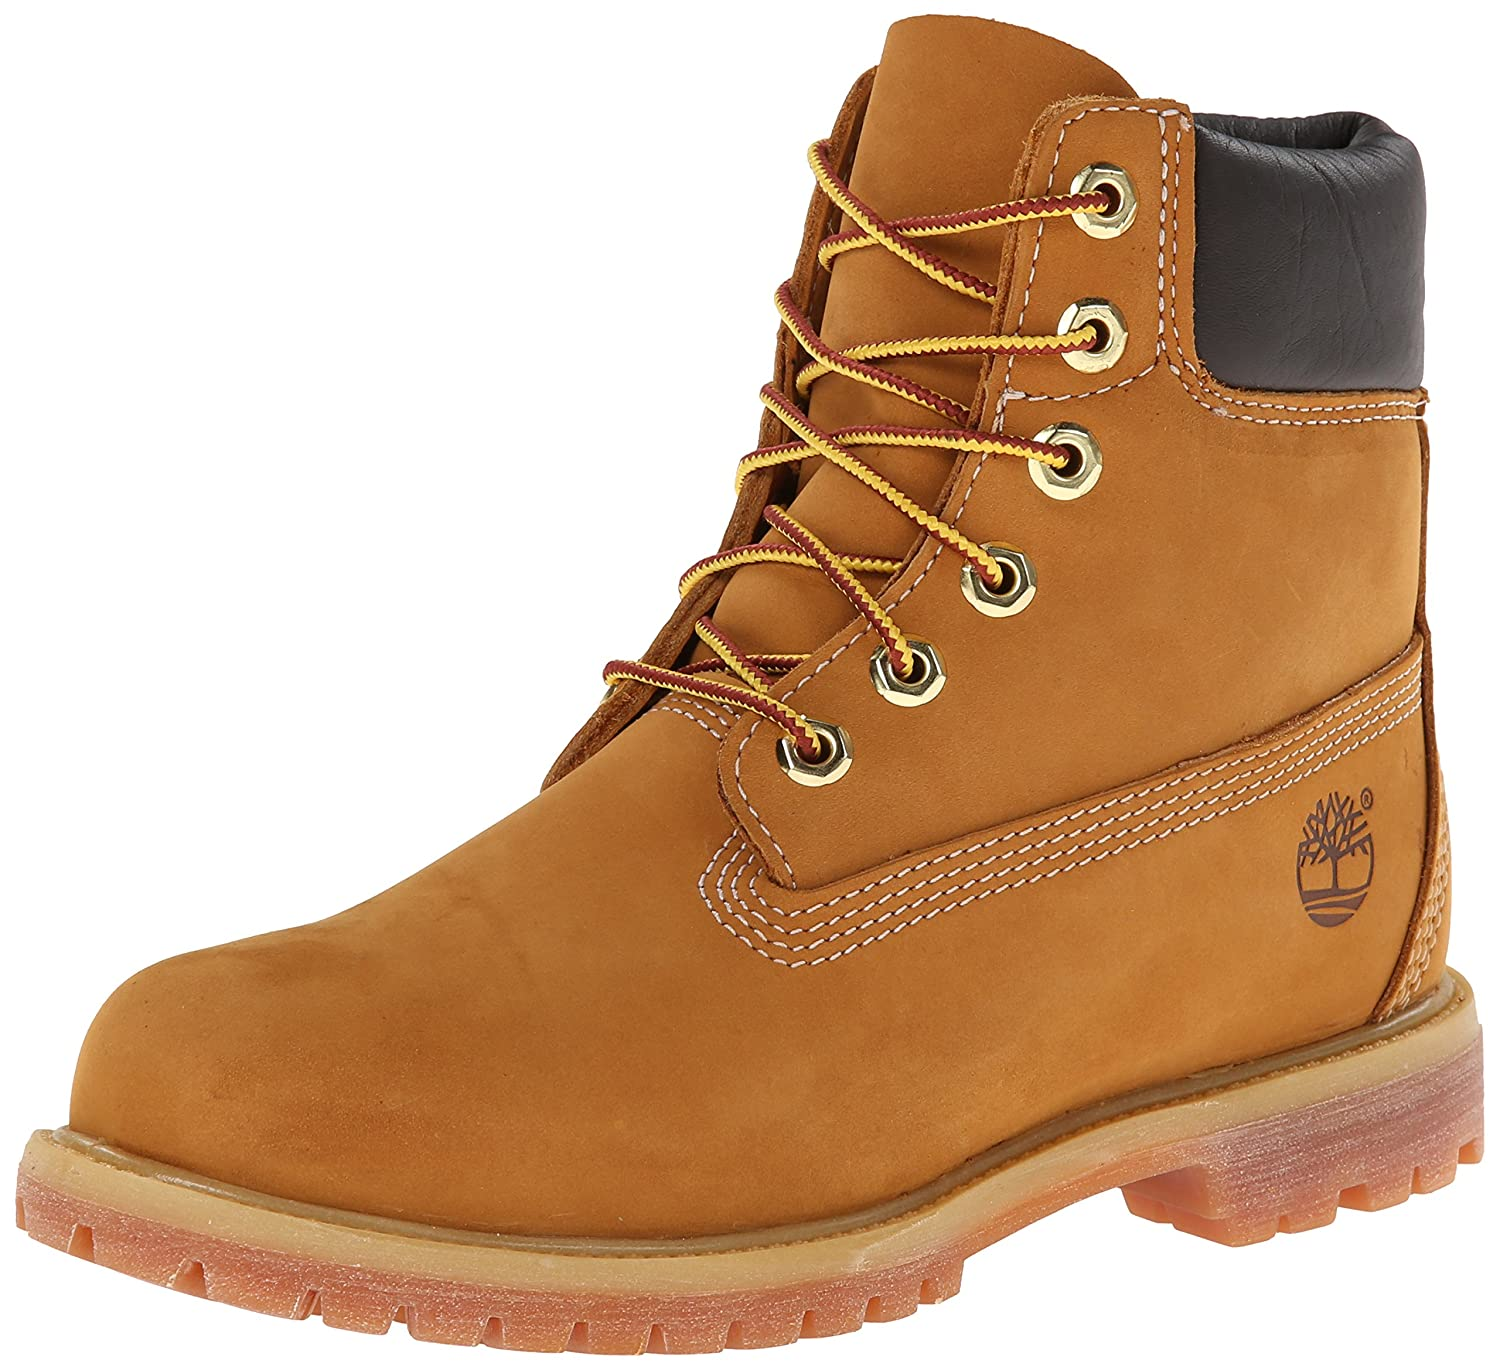 Timberland Usa-made 8 inch damskie